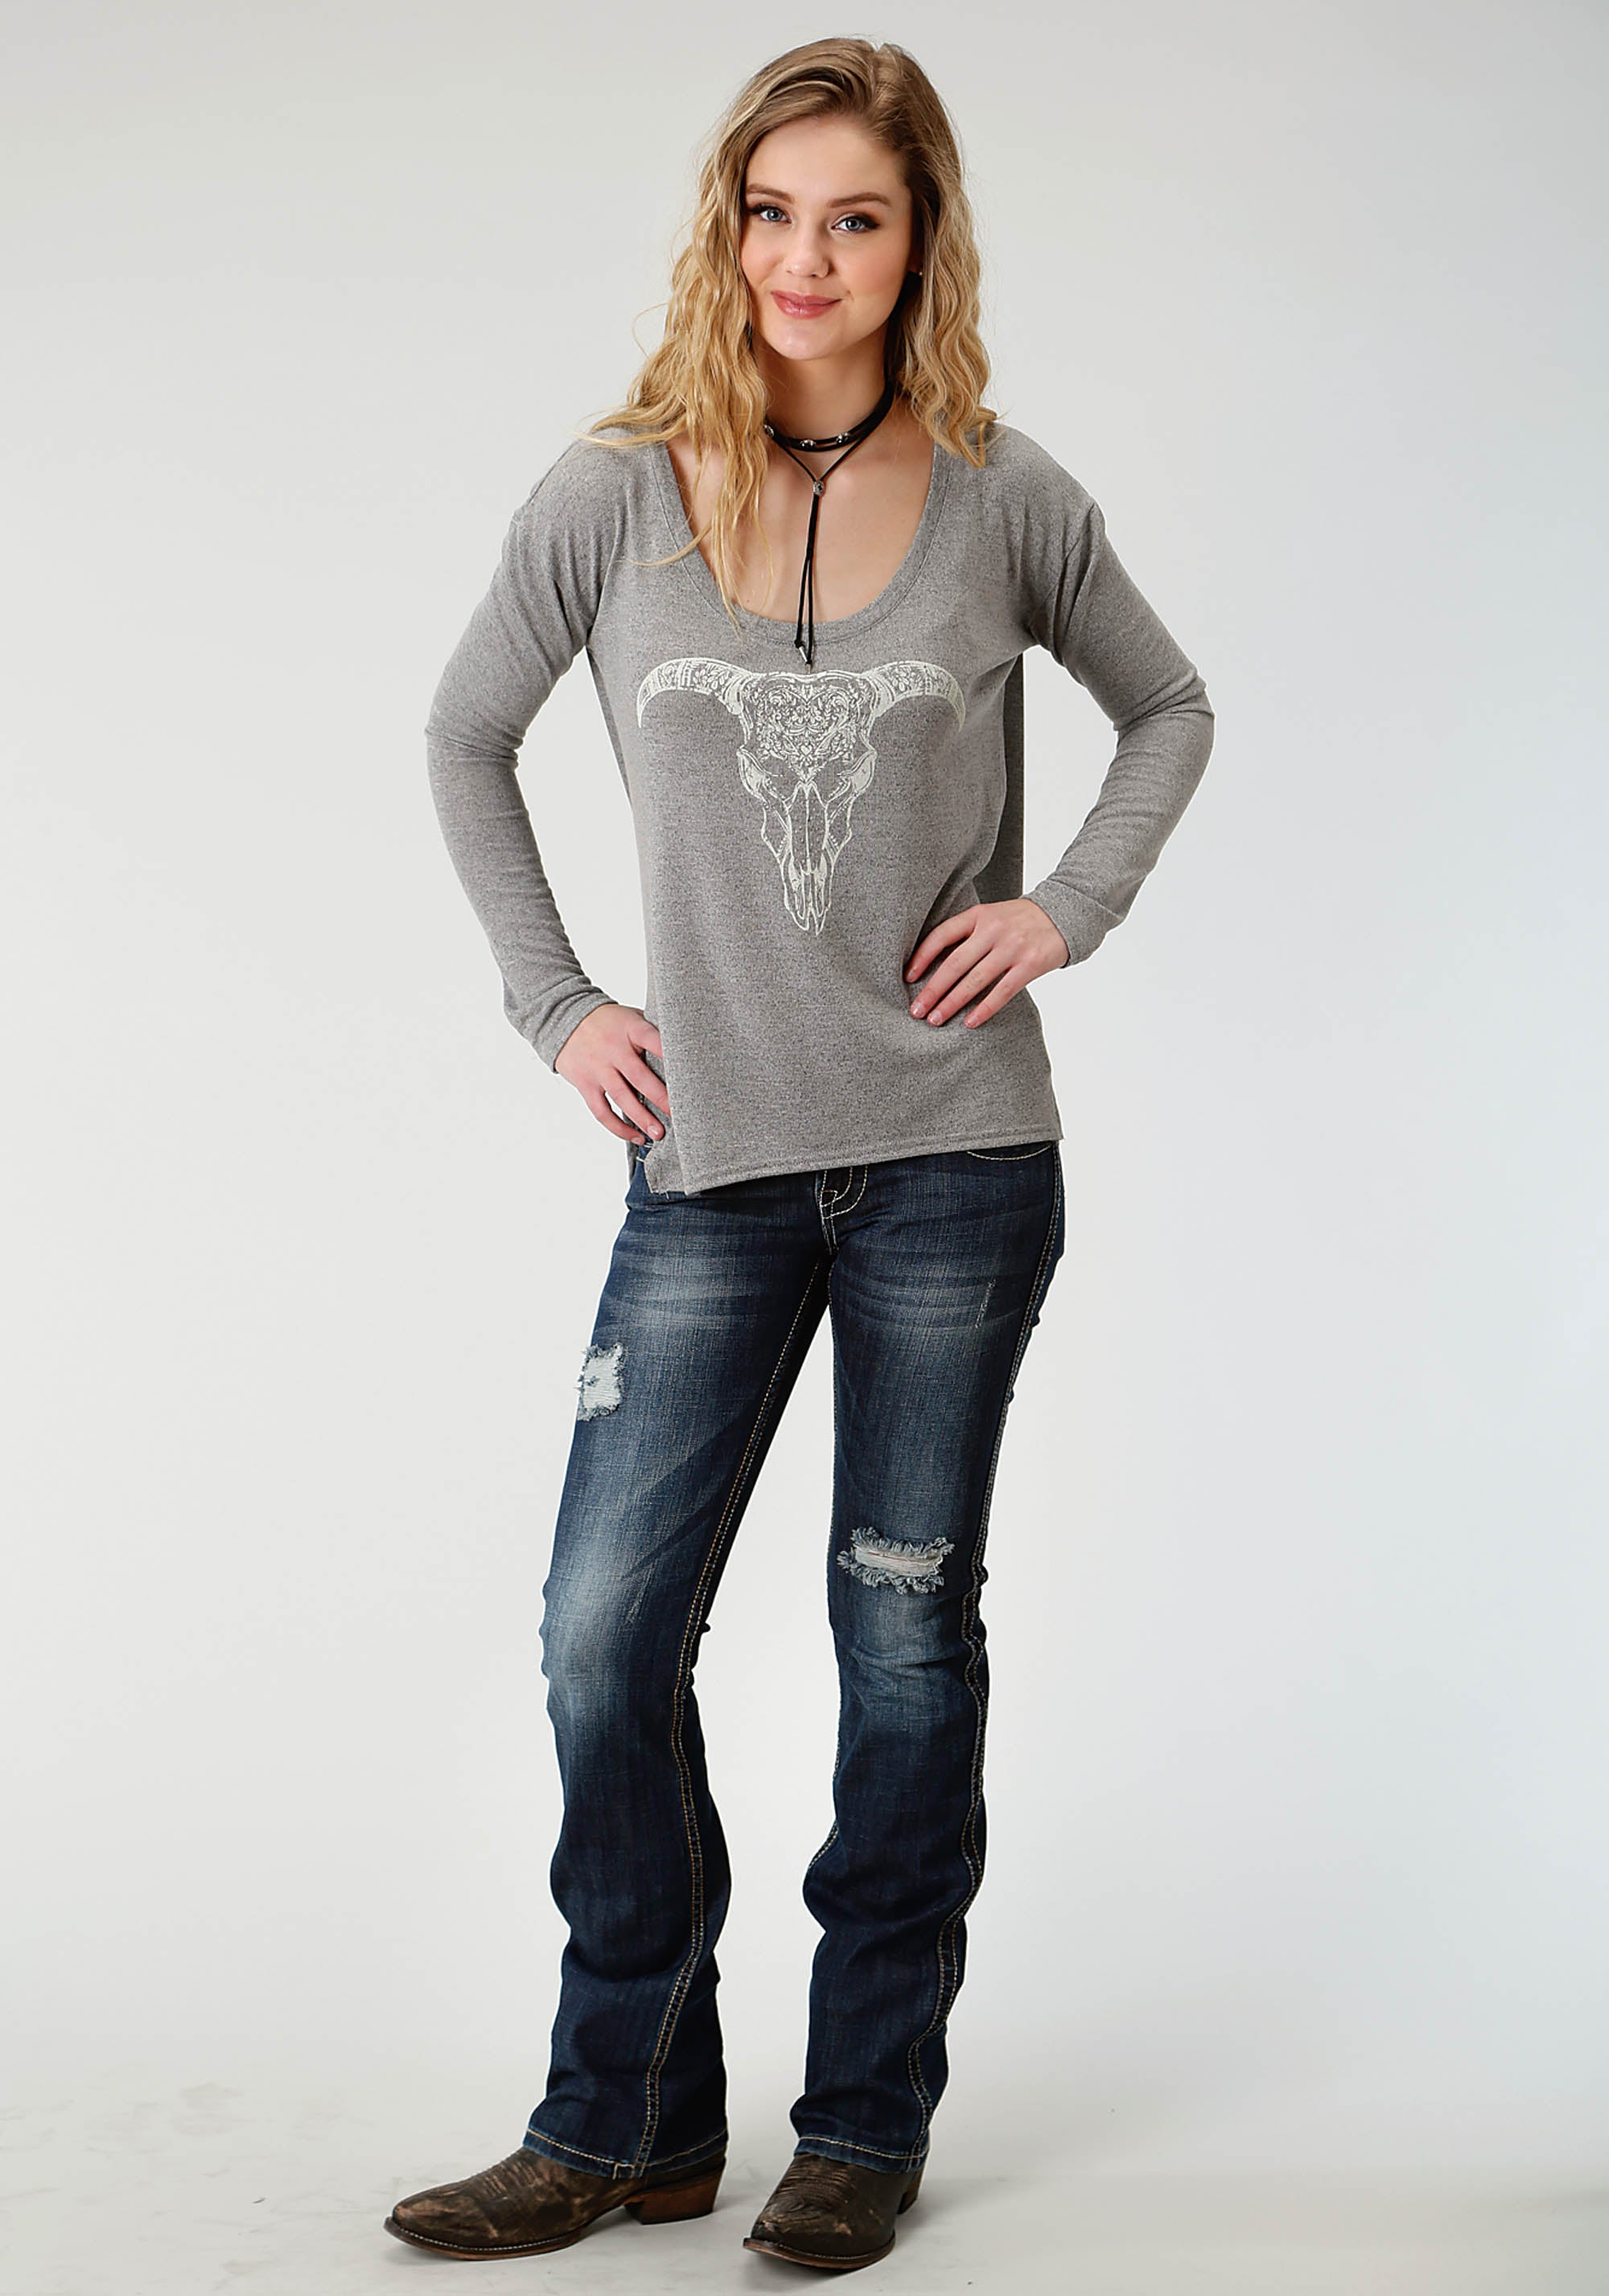 ROPER WOMENS GREY 2251 SCOOP NECK LS SWEATER FIVE STAR COLLECTION- FALL I LONG SLEEVE